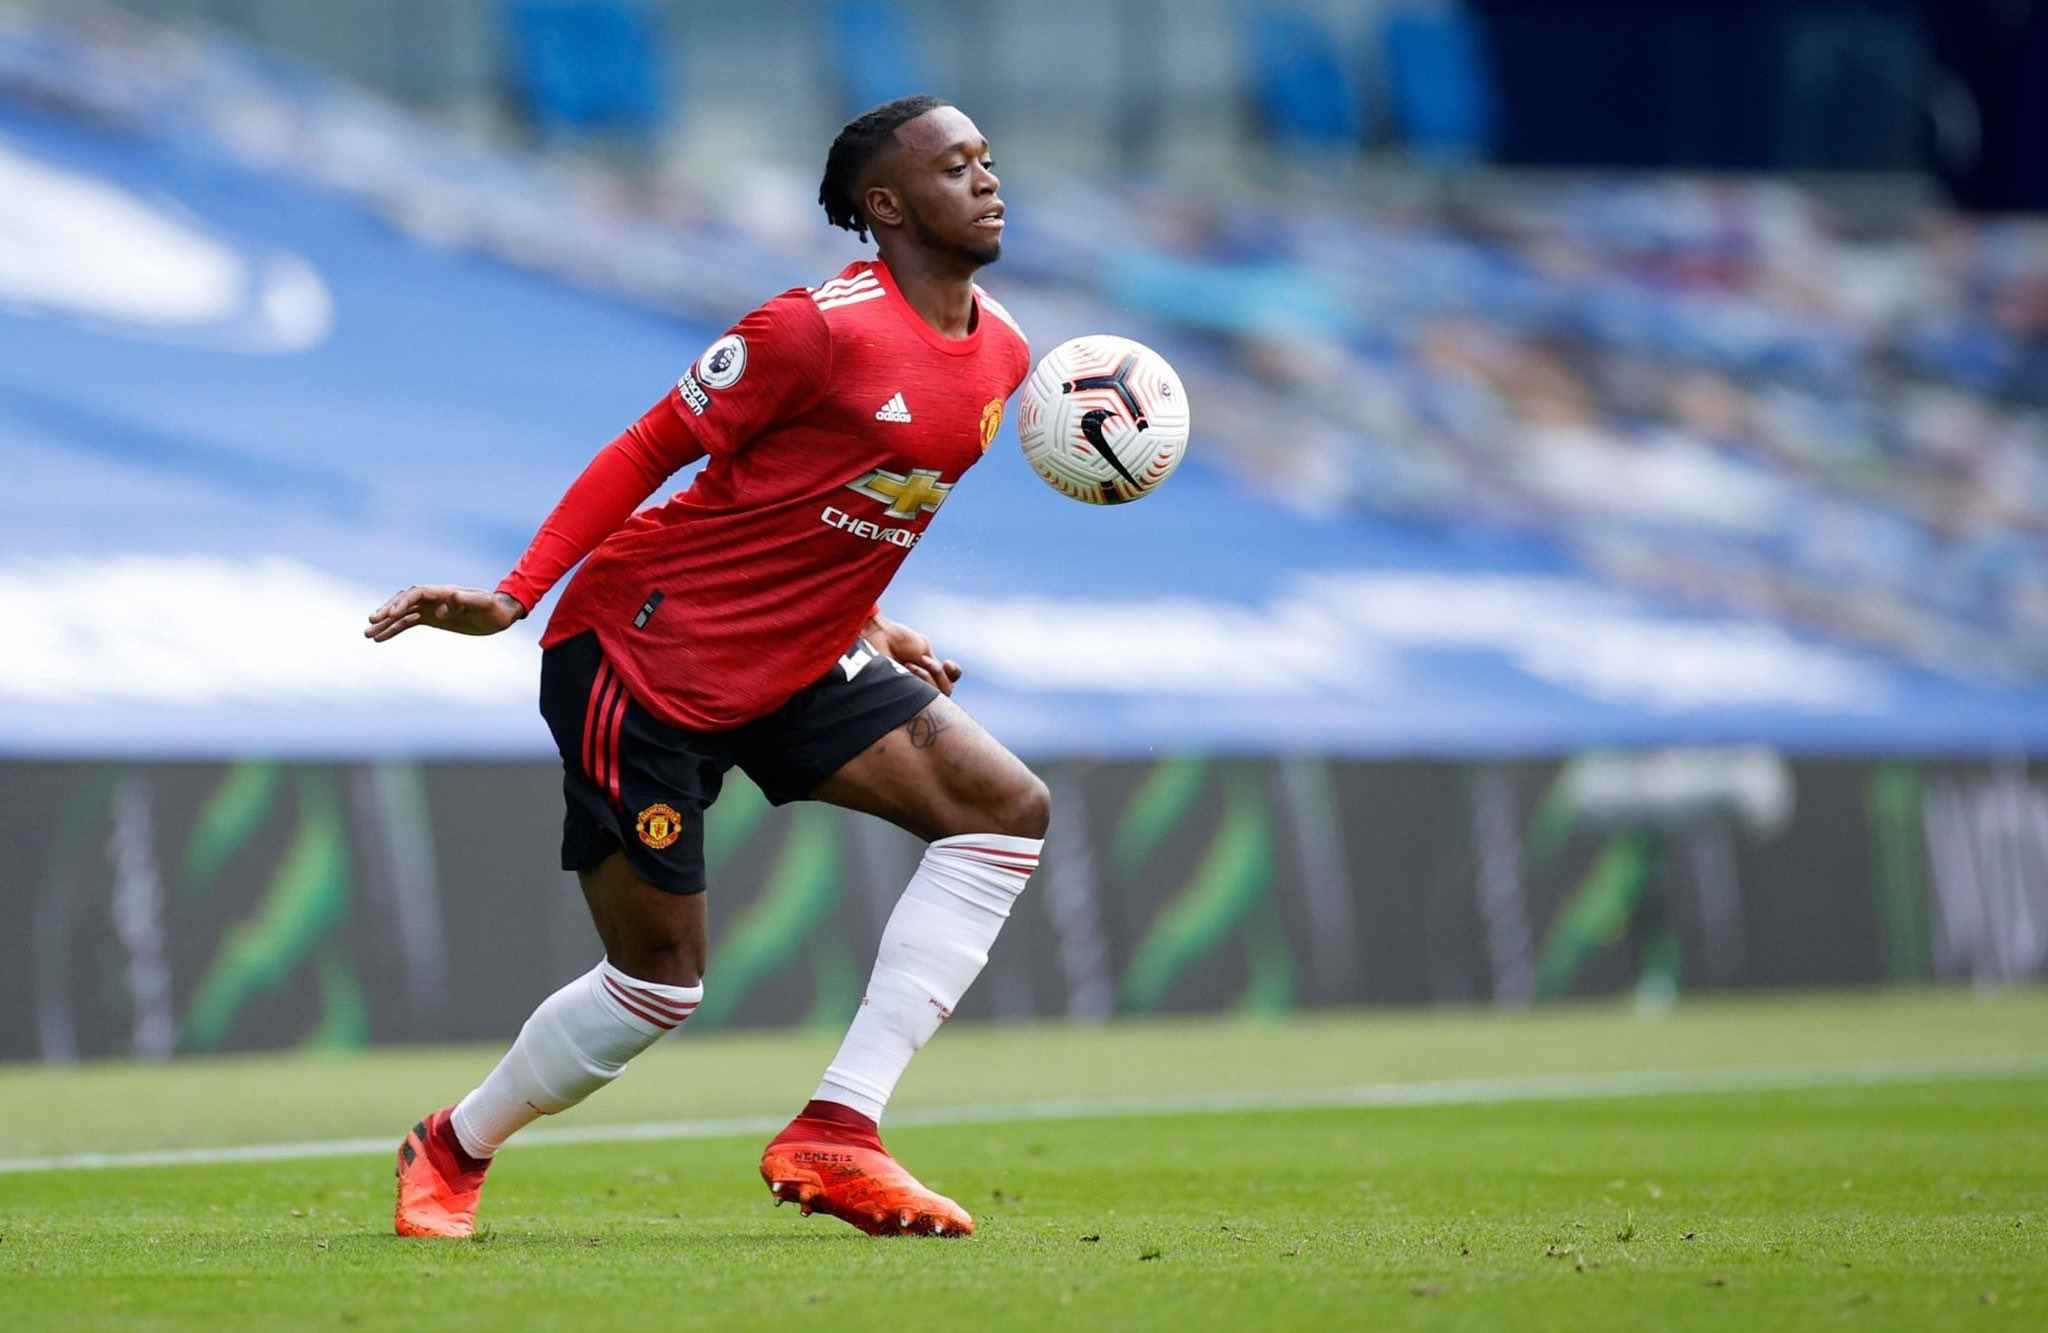 'I was screaming!' – Joe Cole slams Aaron Wan-Bissaka after Man Utd's win at Brighton